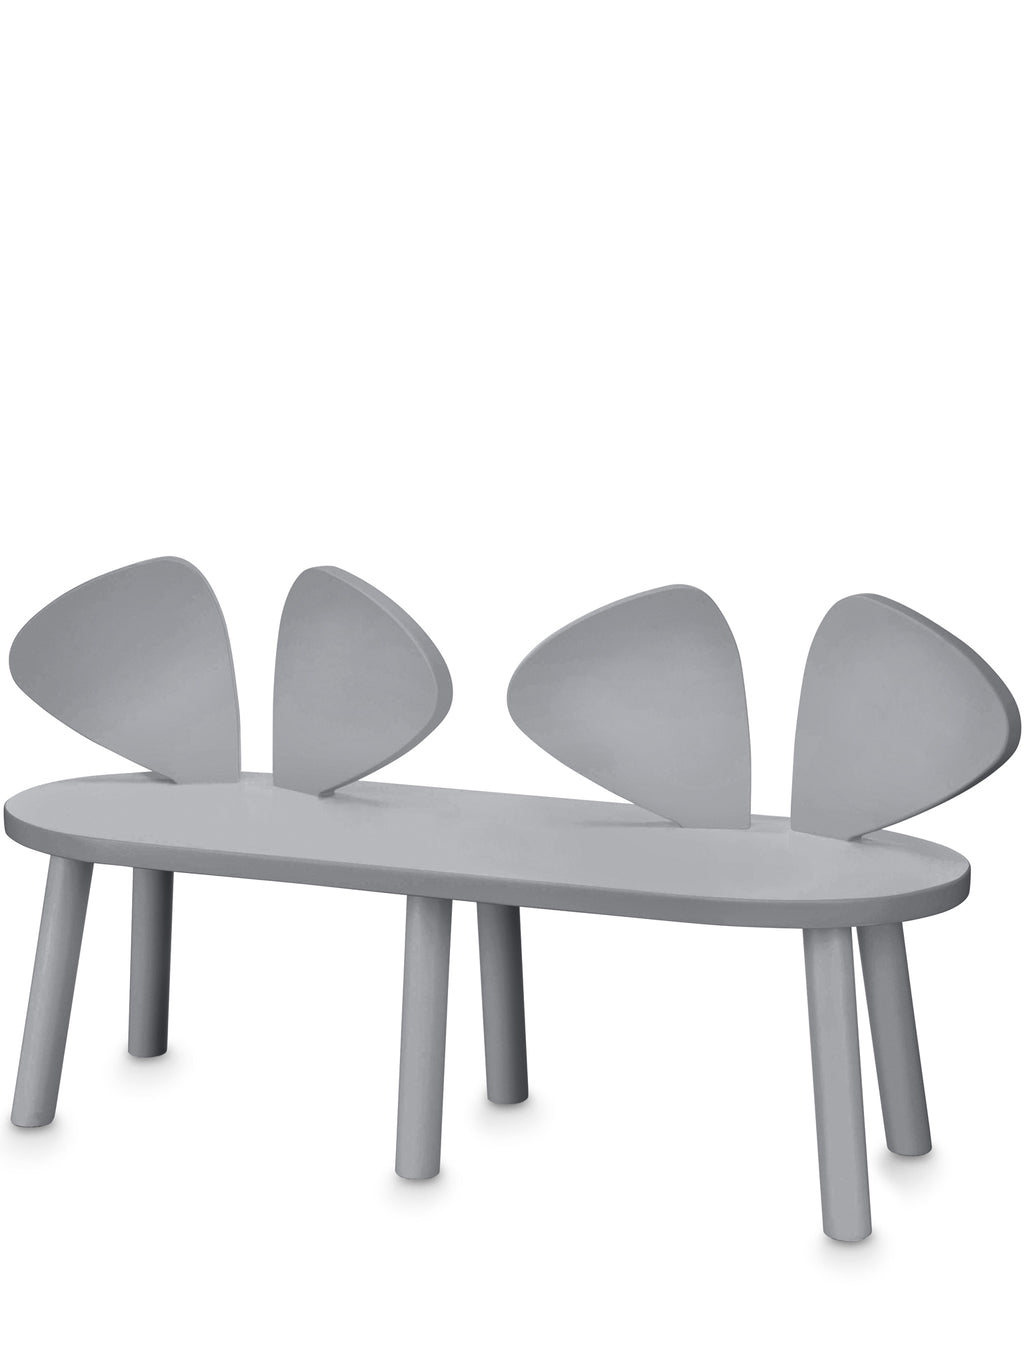 Nofred Mouse Bench Grey | Nofred Mouse Bench bænk grå